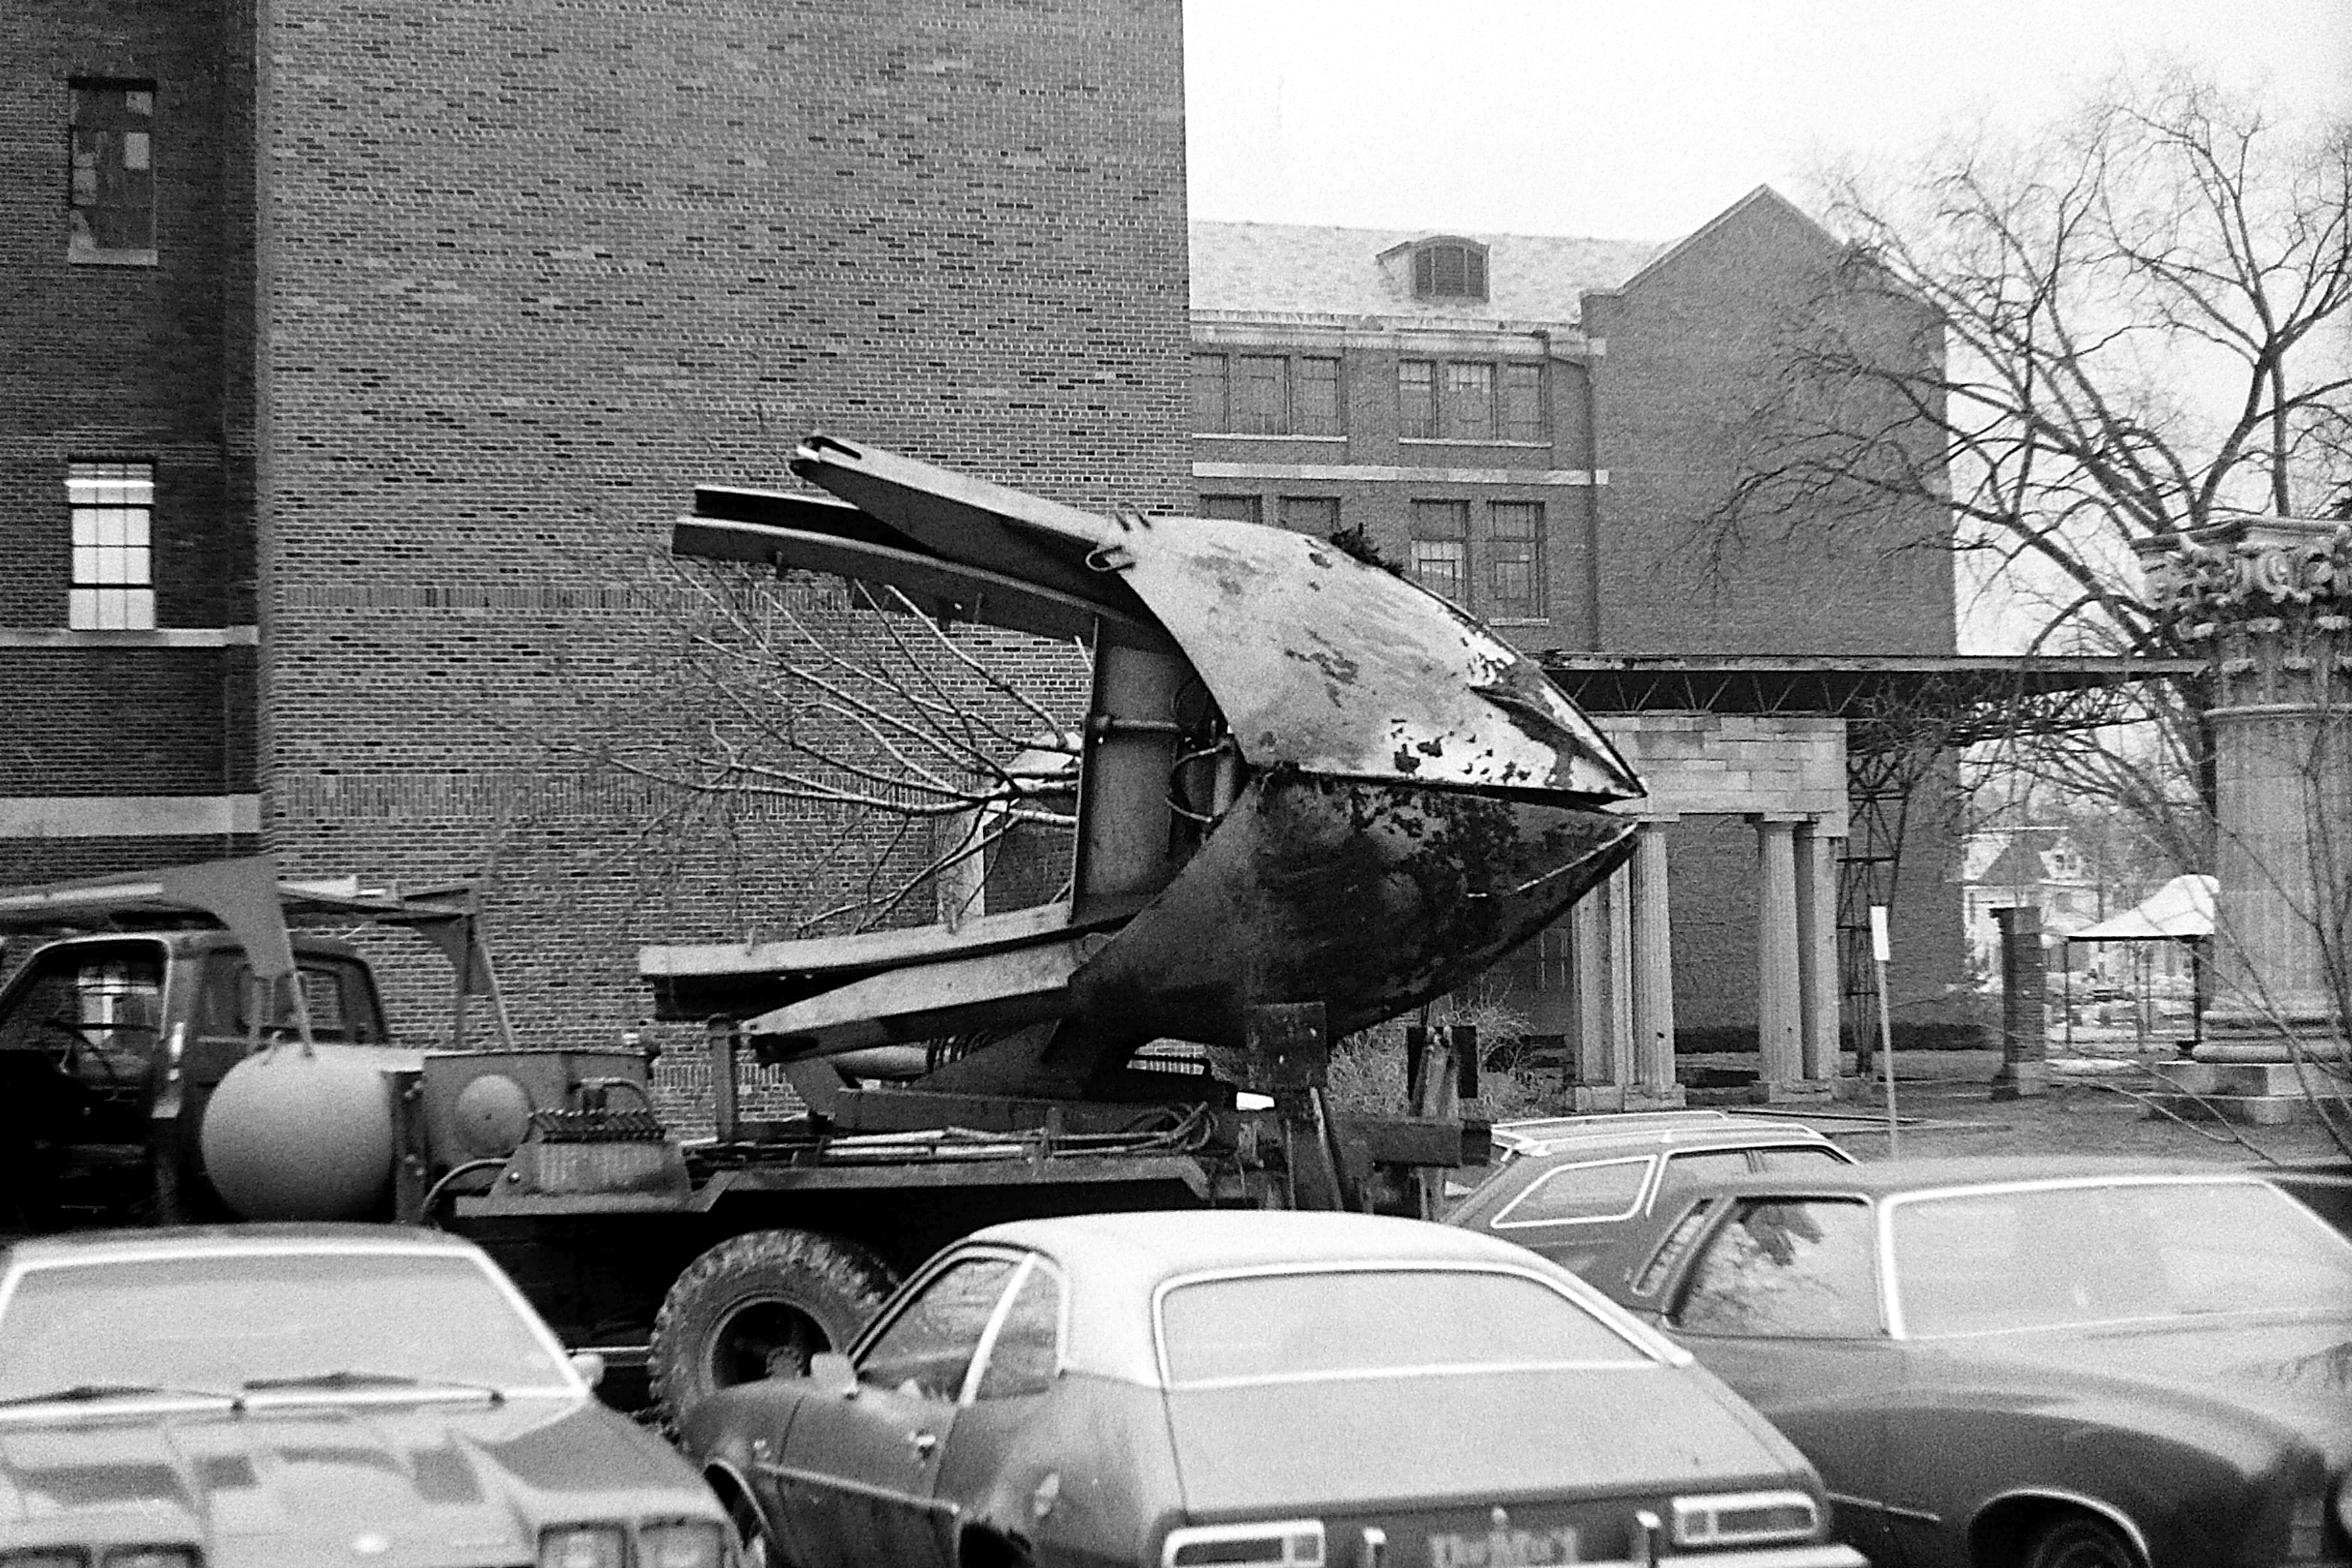 Tree Extractor, 1978 image